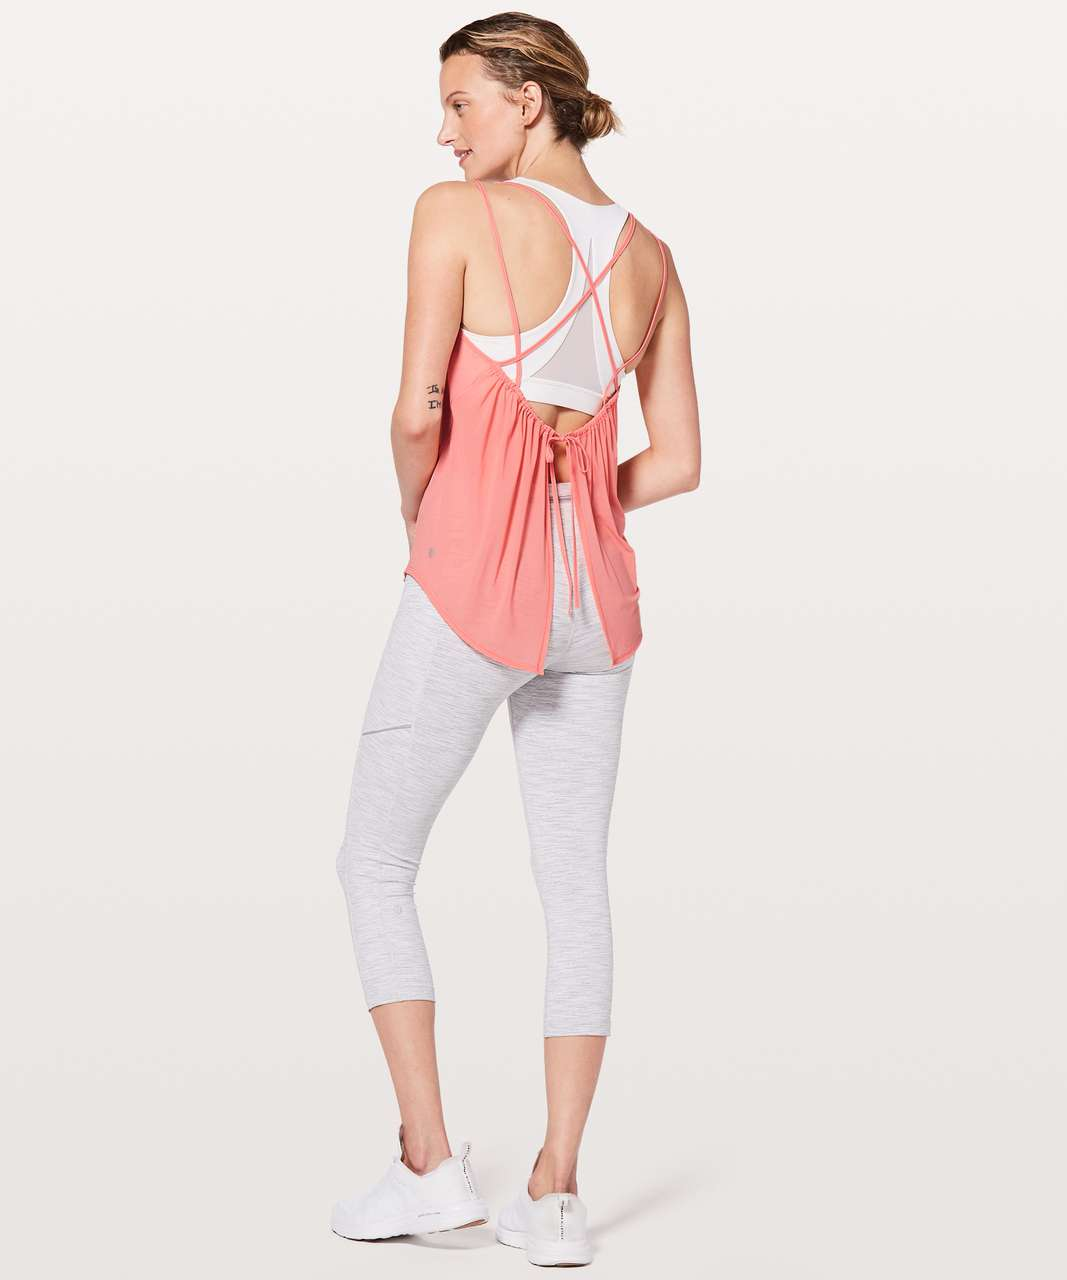 Lululemon Such A Cinch Tank - Light Coral